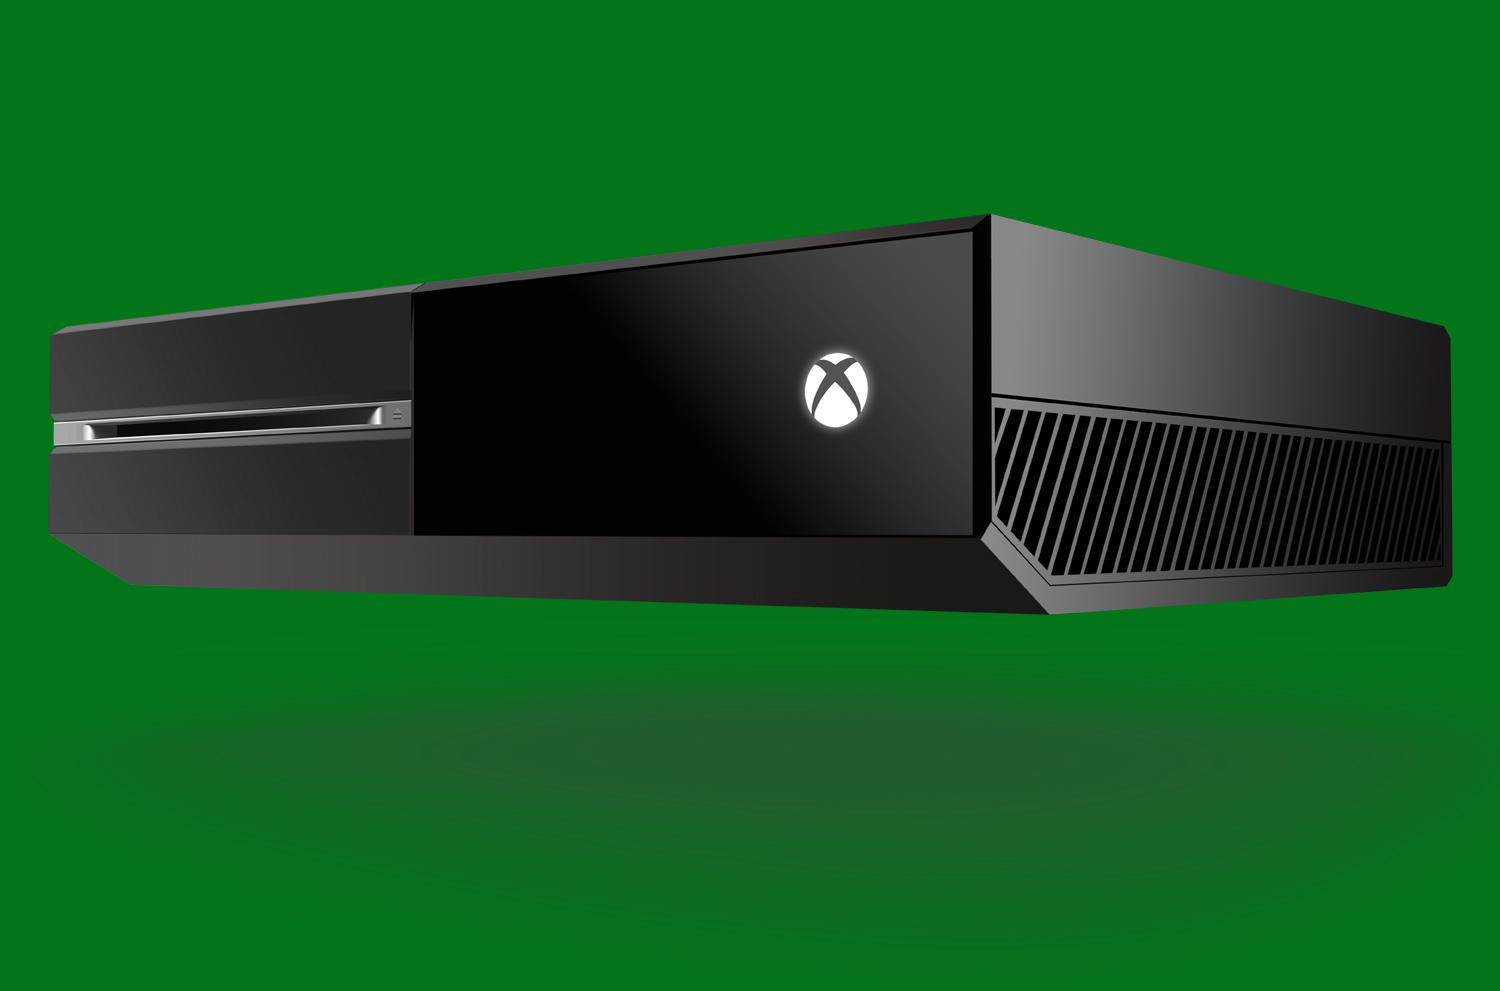 Xbox One - The console can also matches